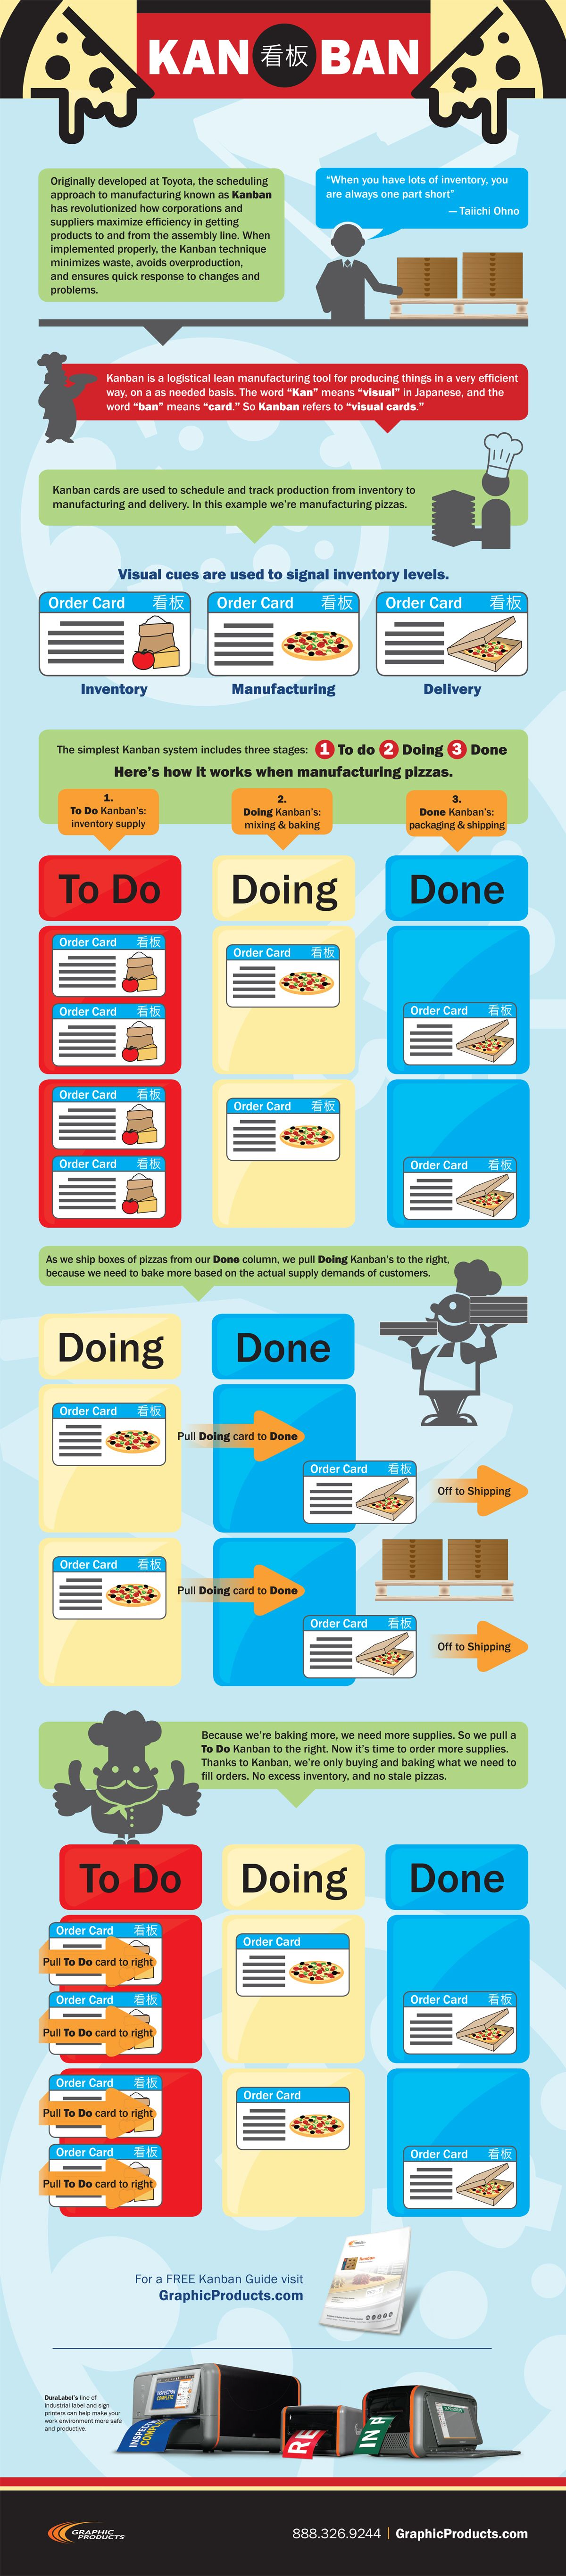 Kanban Infographic Kanban Explained Graphic Products Kanban Agile Project Management Lean Six Sigma